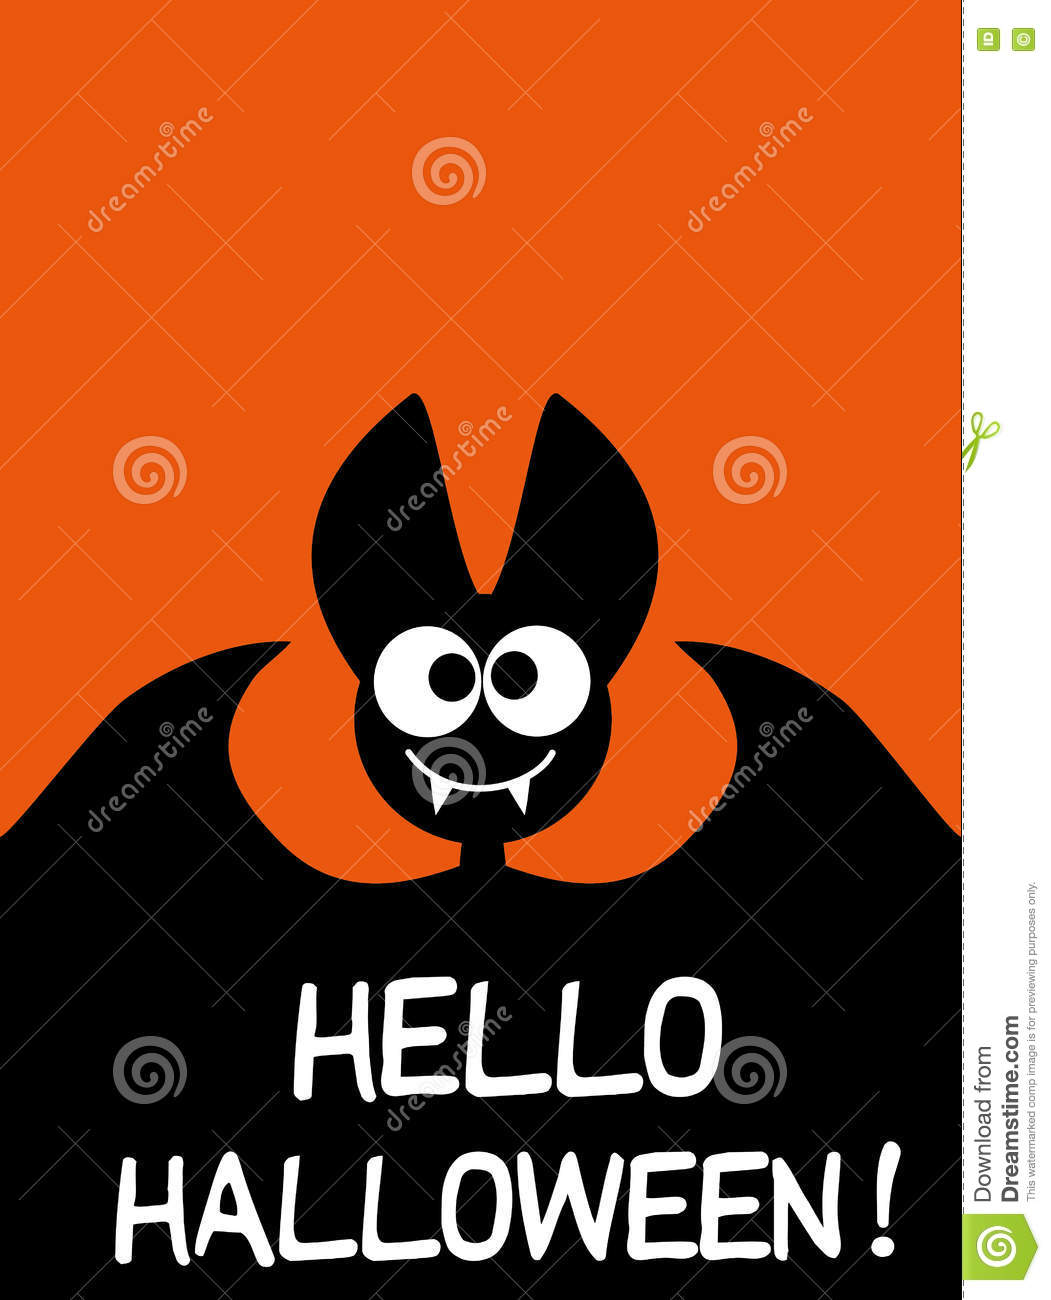 Oct Cartoons Illustrations Amp Vector Stock Images 89